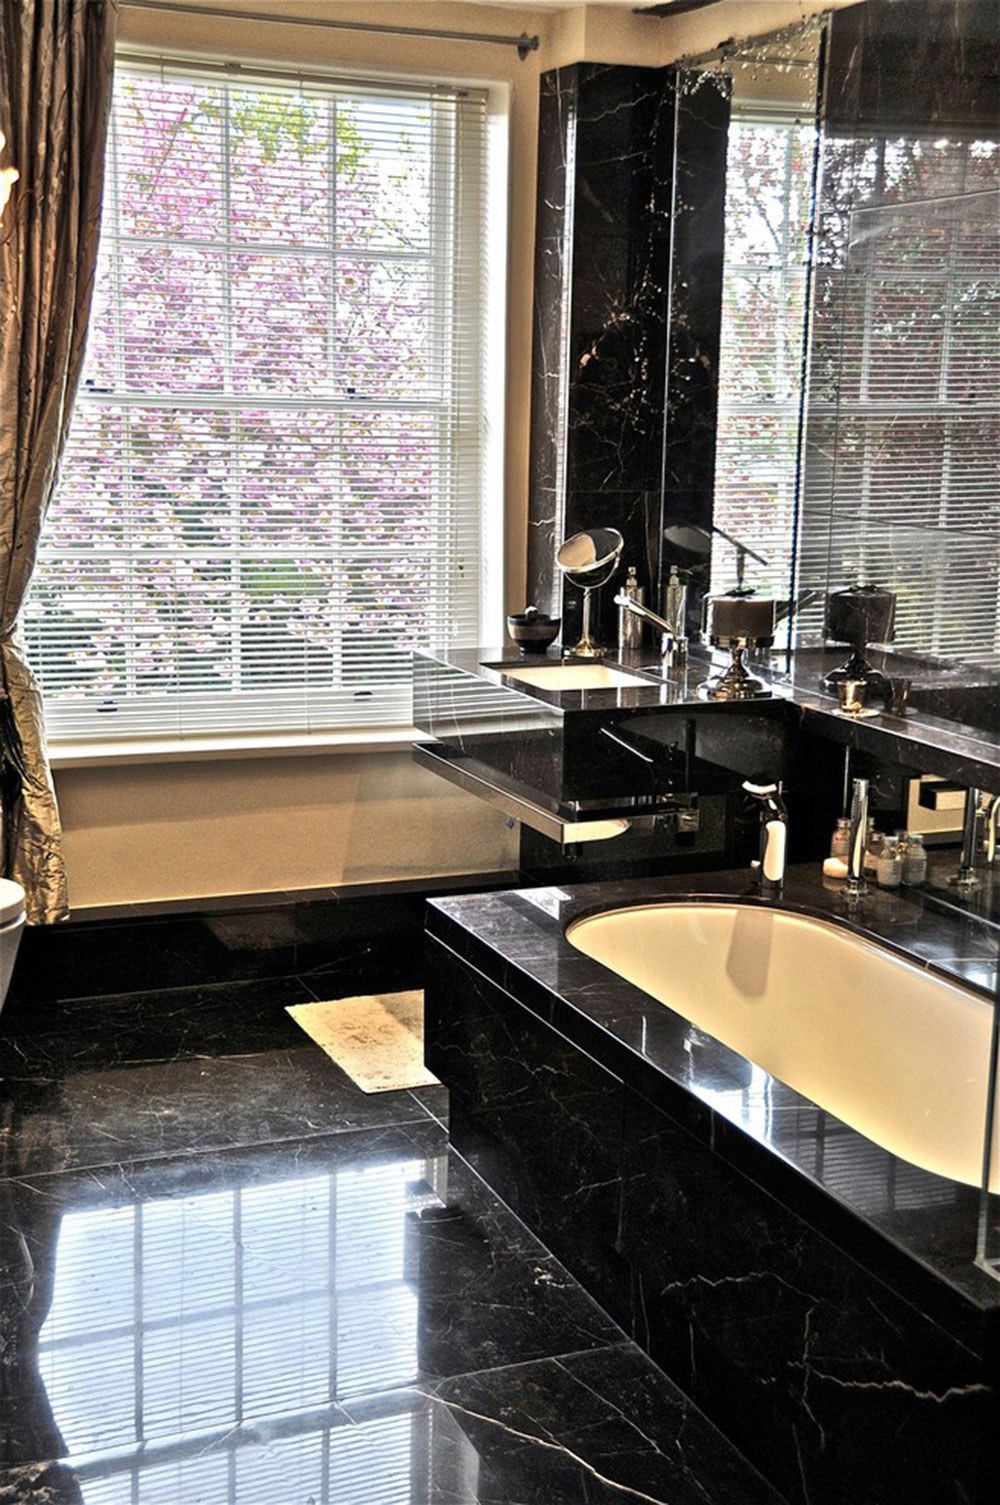 Home Remodeling And Renovation Ideas10 Home Remodeling And Renovation Ideas